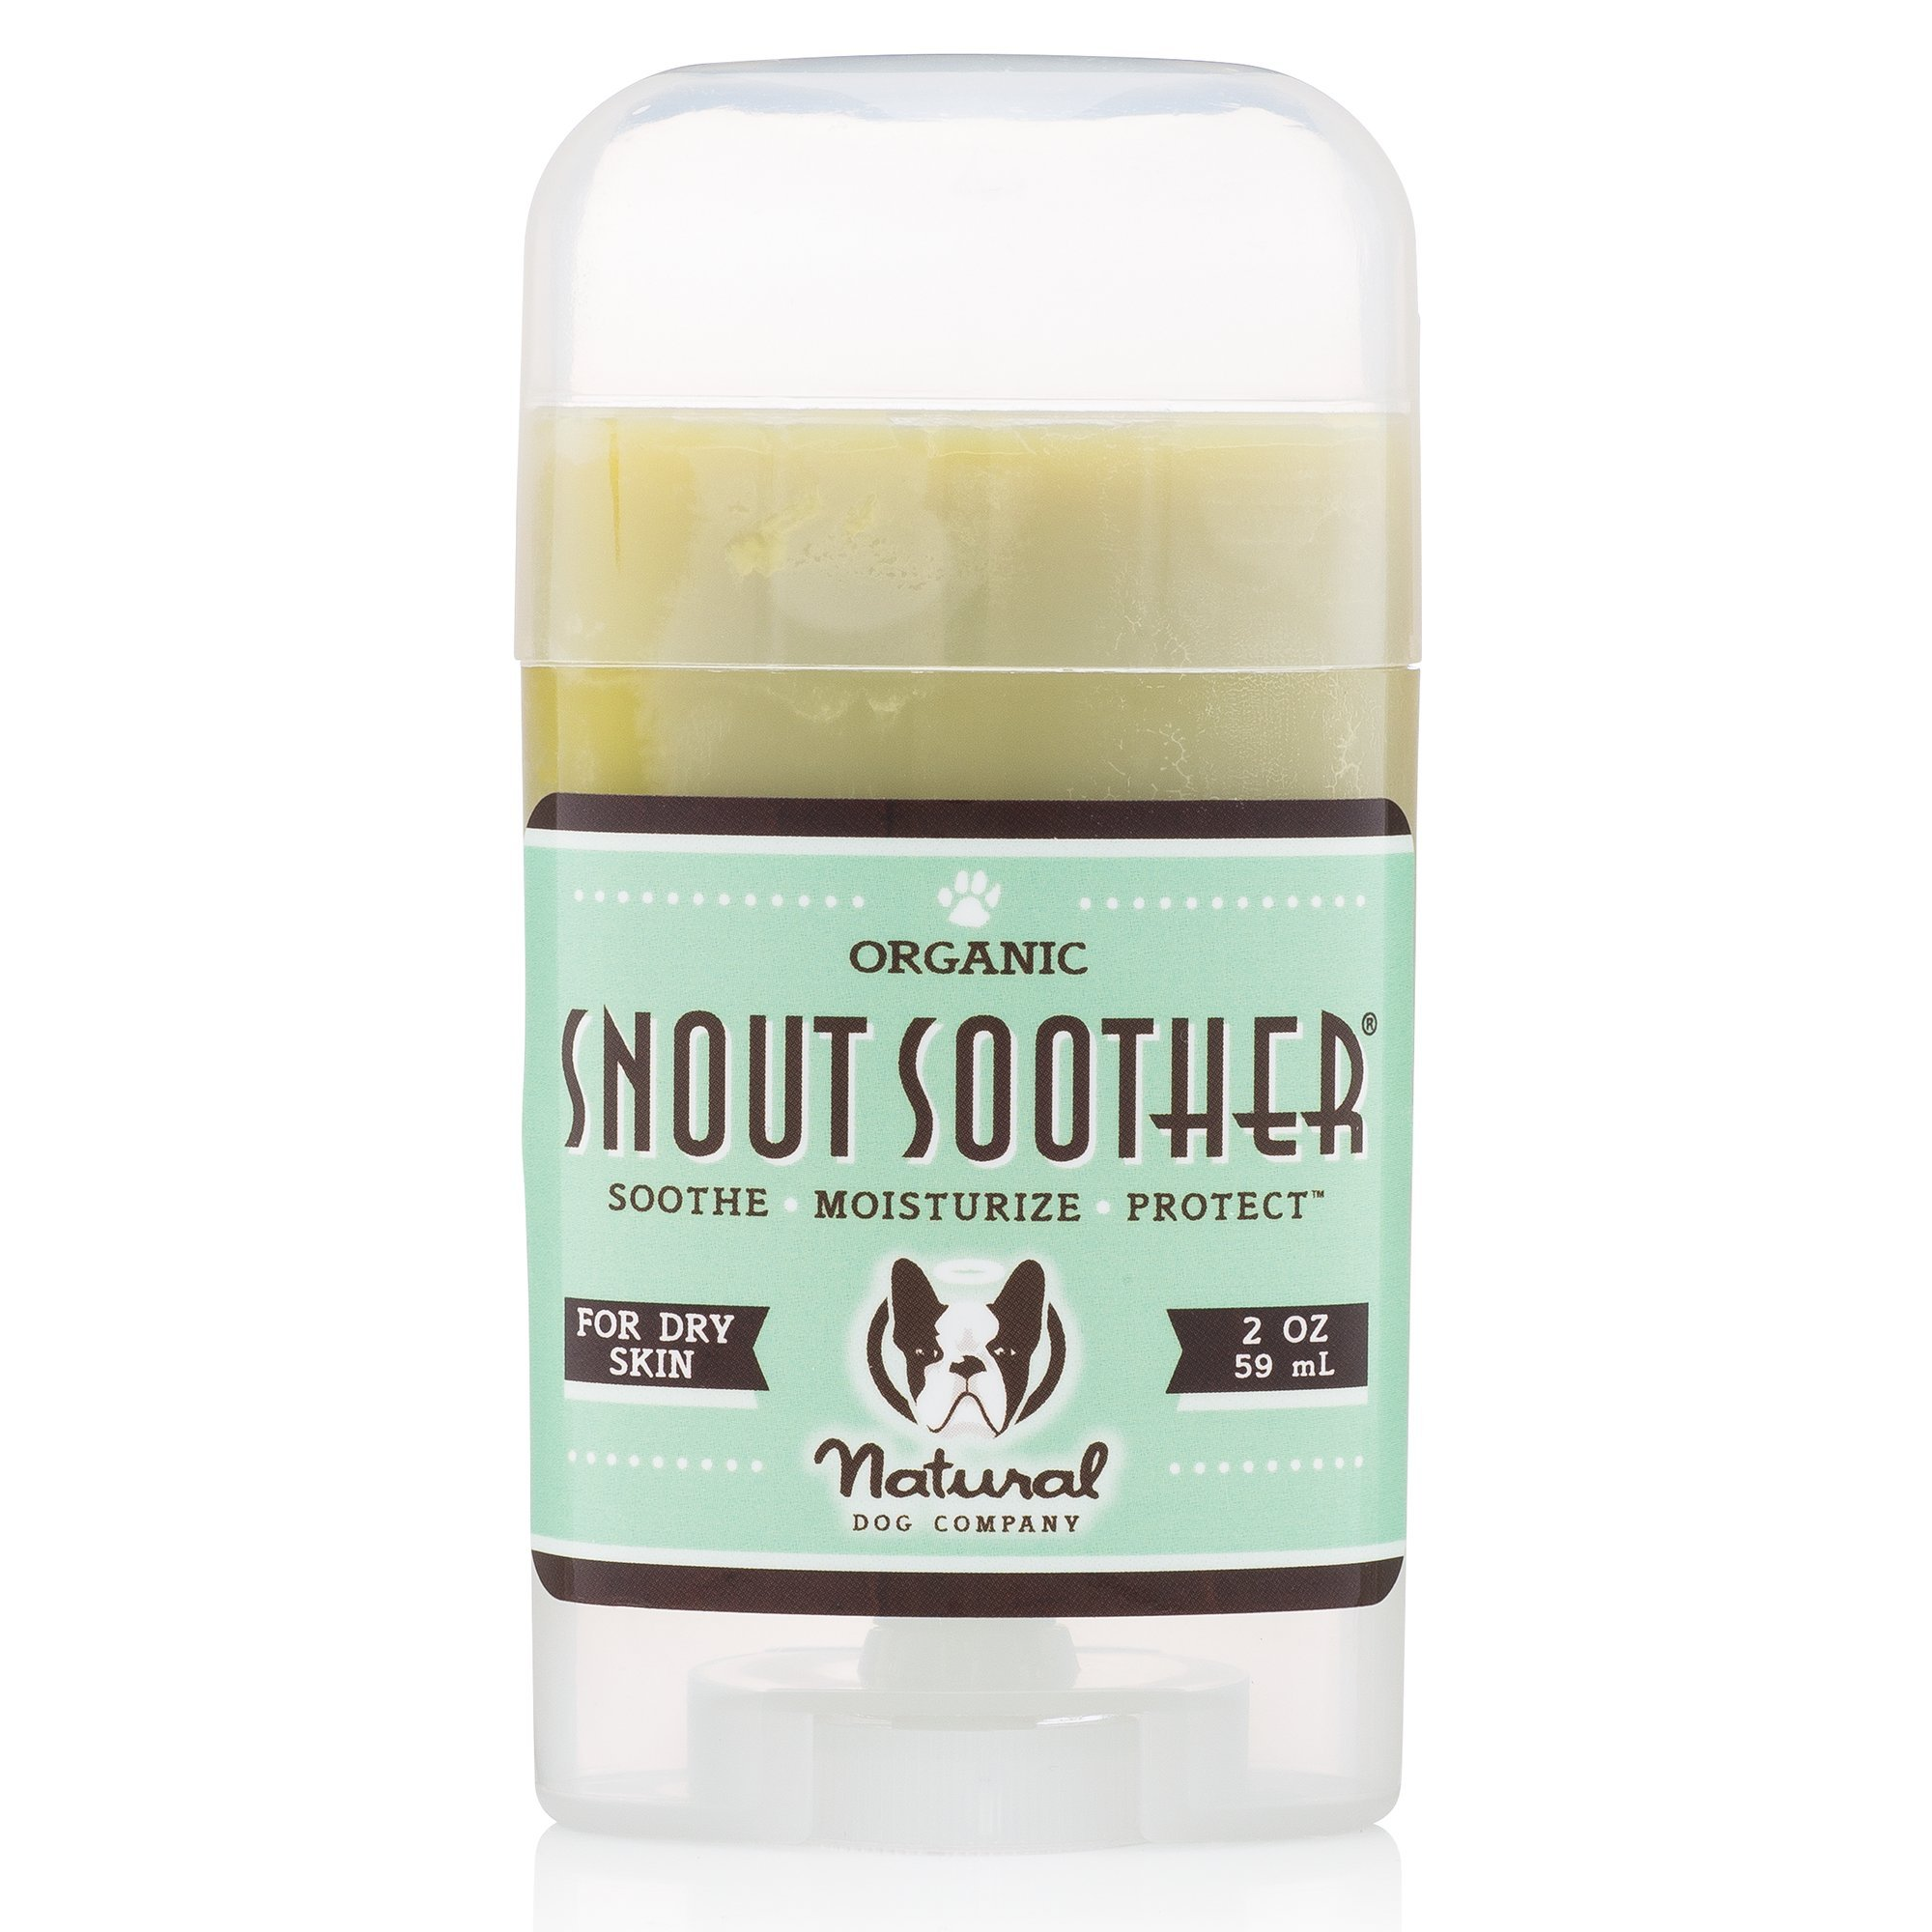 Natural Dog Company - Snout Soother | All-Natural Remedy for Chapped, Crusty, and Dry Dog Noses | Veterinarian Recommended - 2 Oz Stick by Natural Dog Company